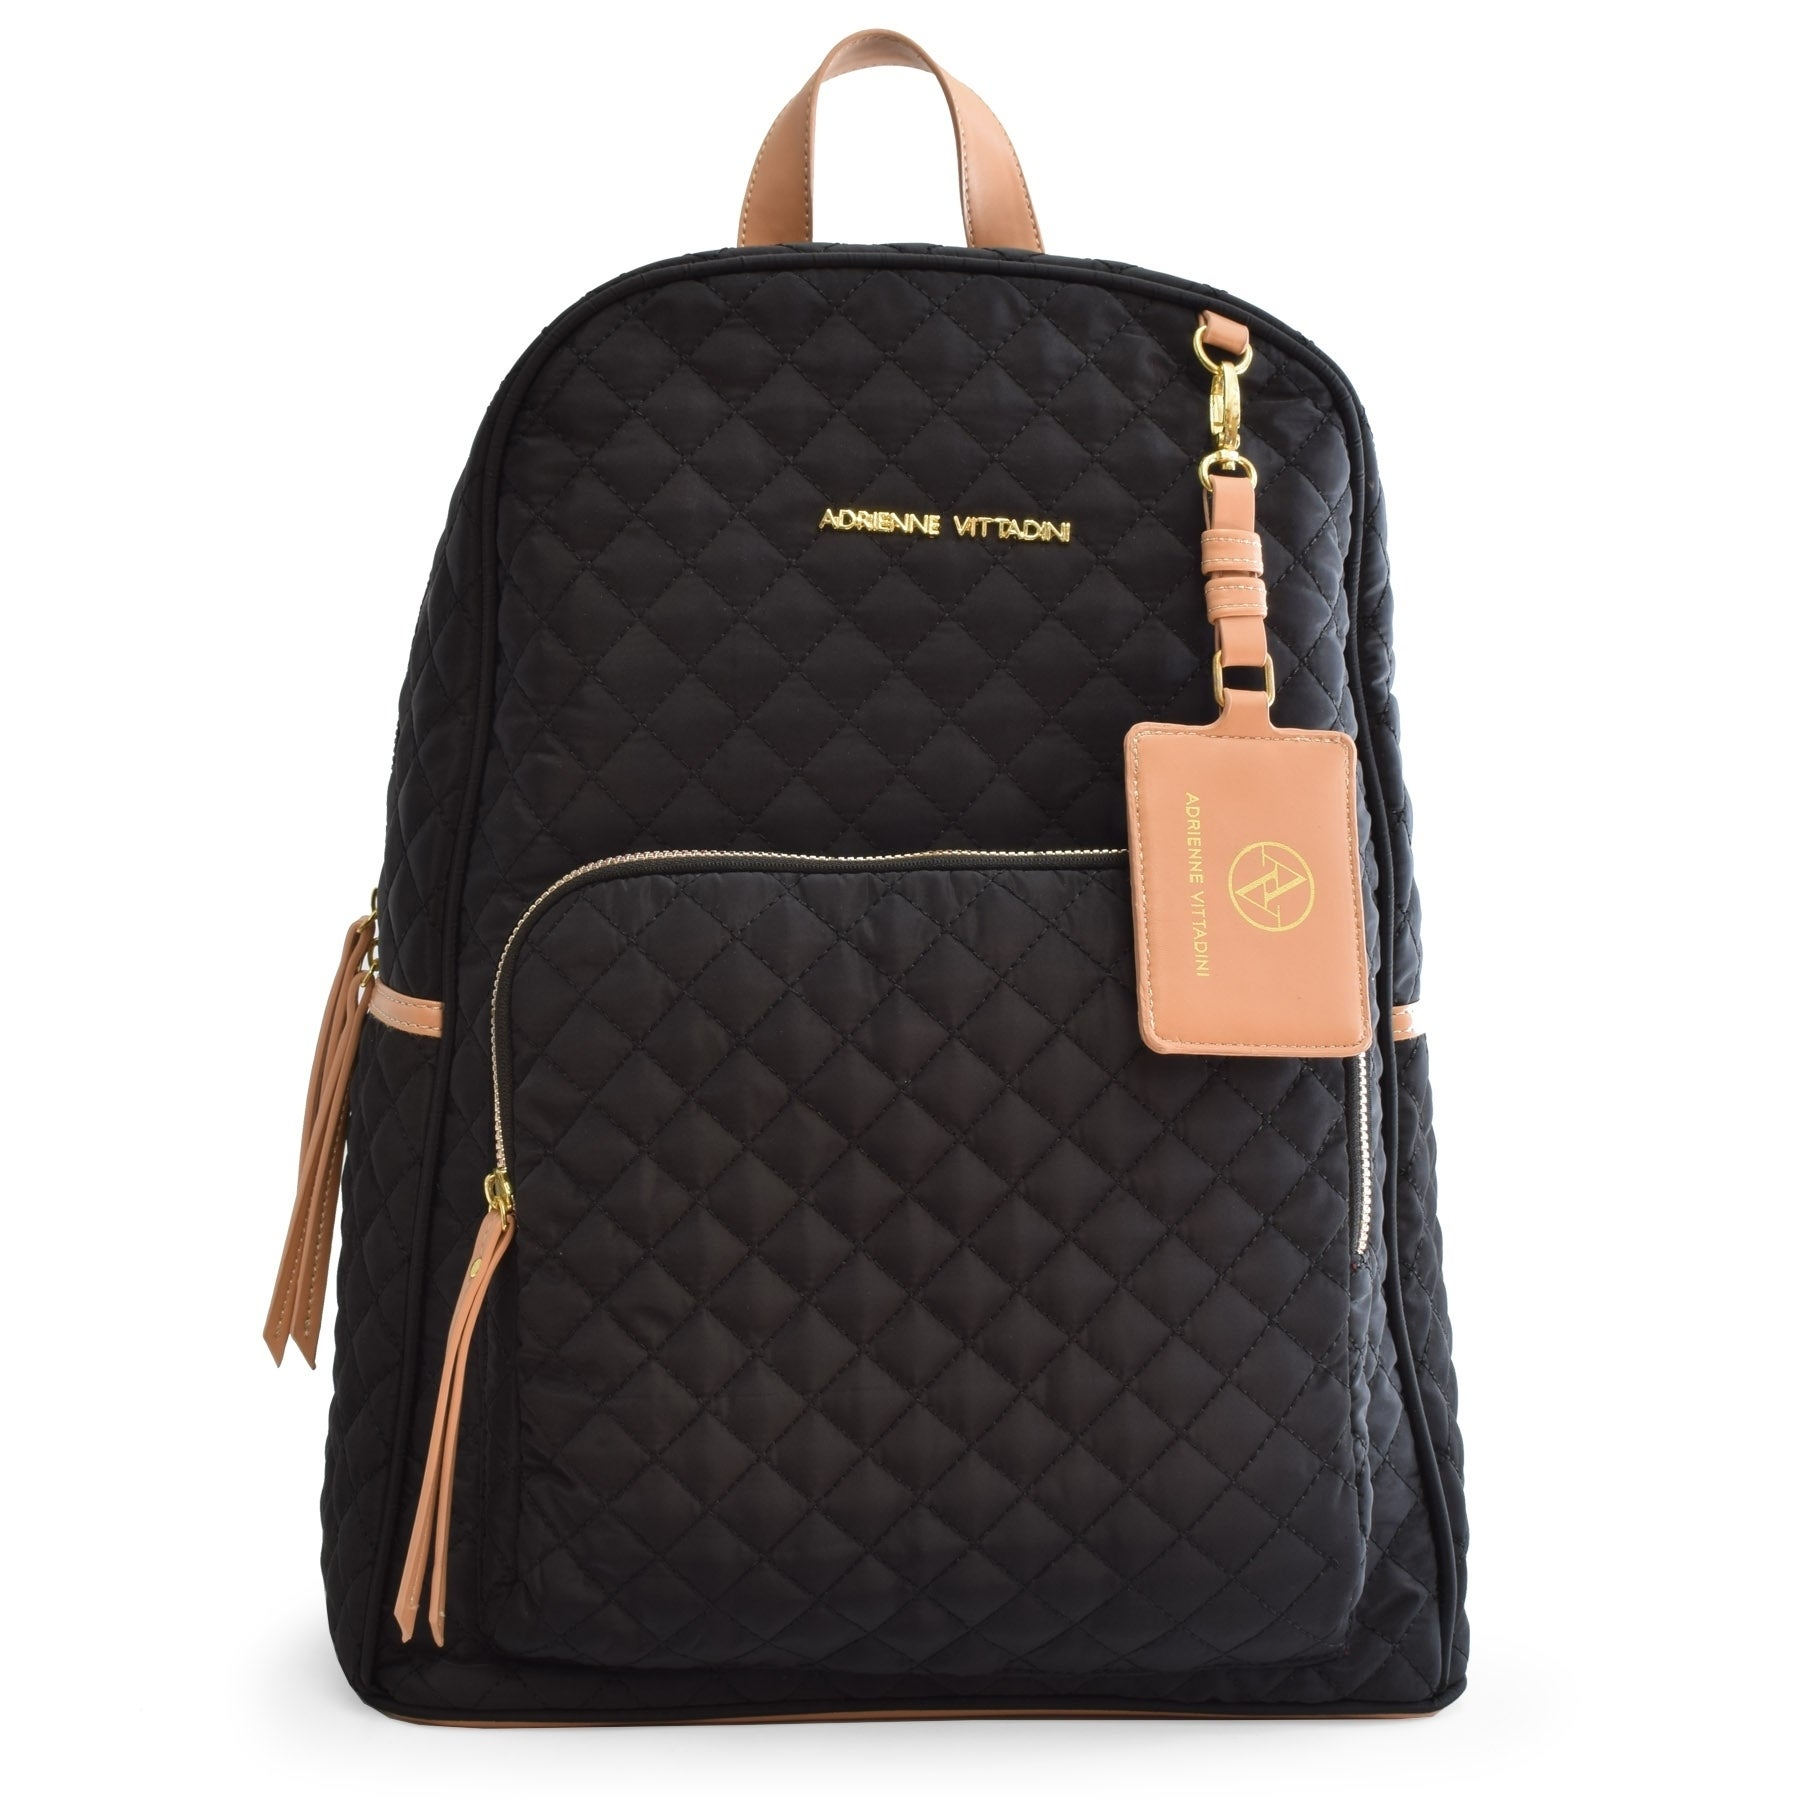 Shop Adrienne Vittadini Quilted Backpack with 13 Inch Padded Laptop  Sleeve-Black - Free Shipping Today - Overstock.com - 20678300 0633a4fde3